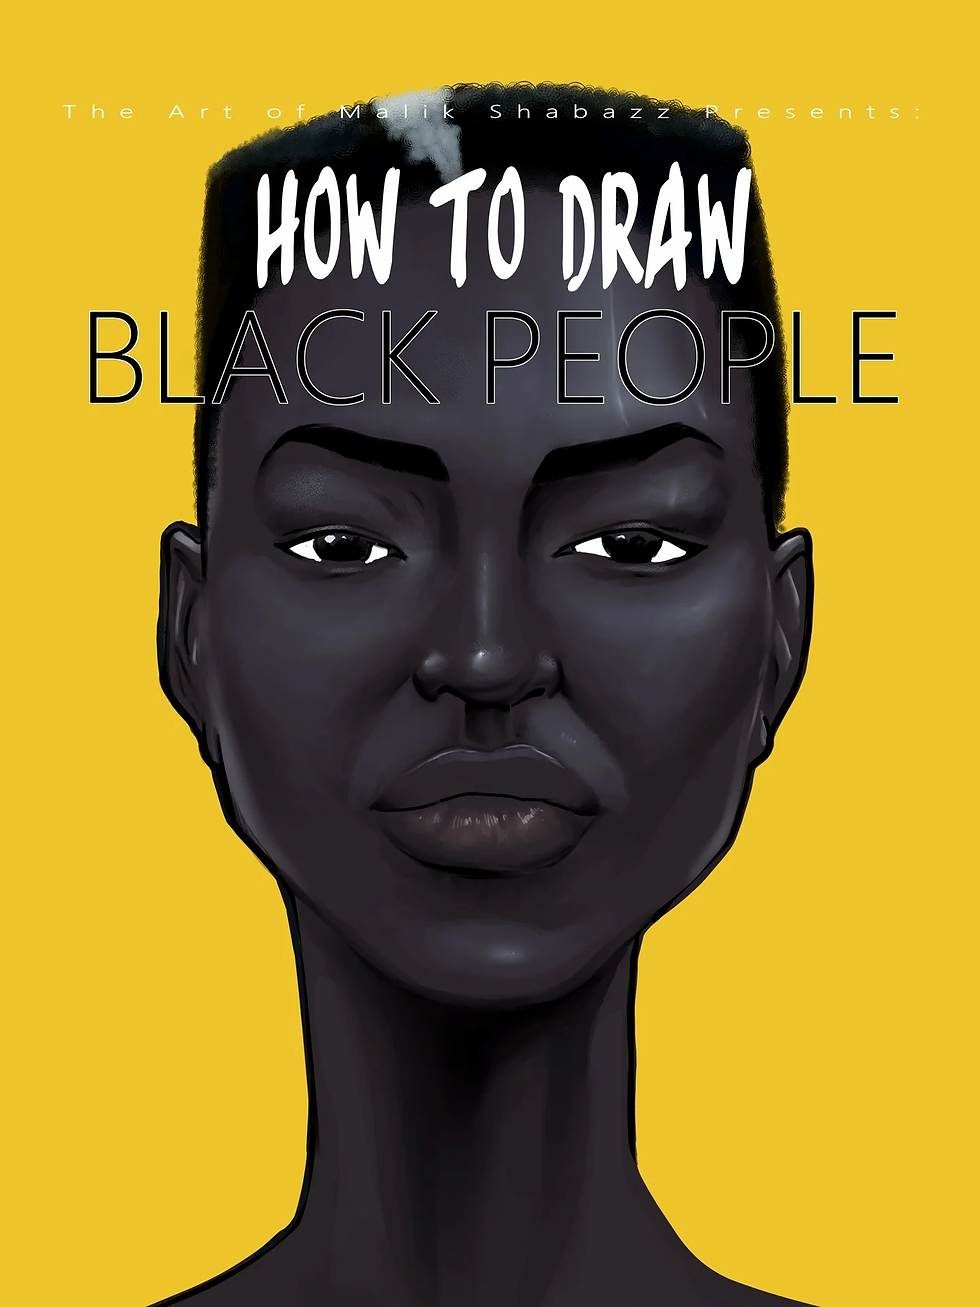 How to draw black people book cover